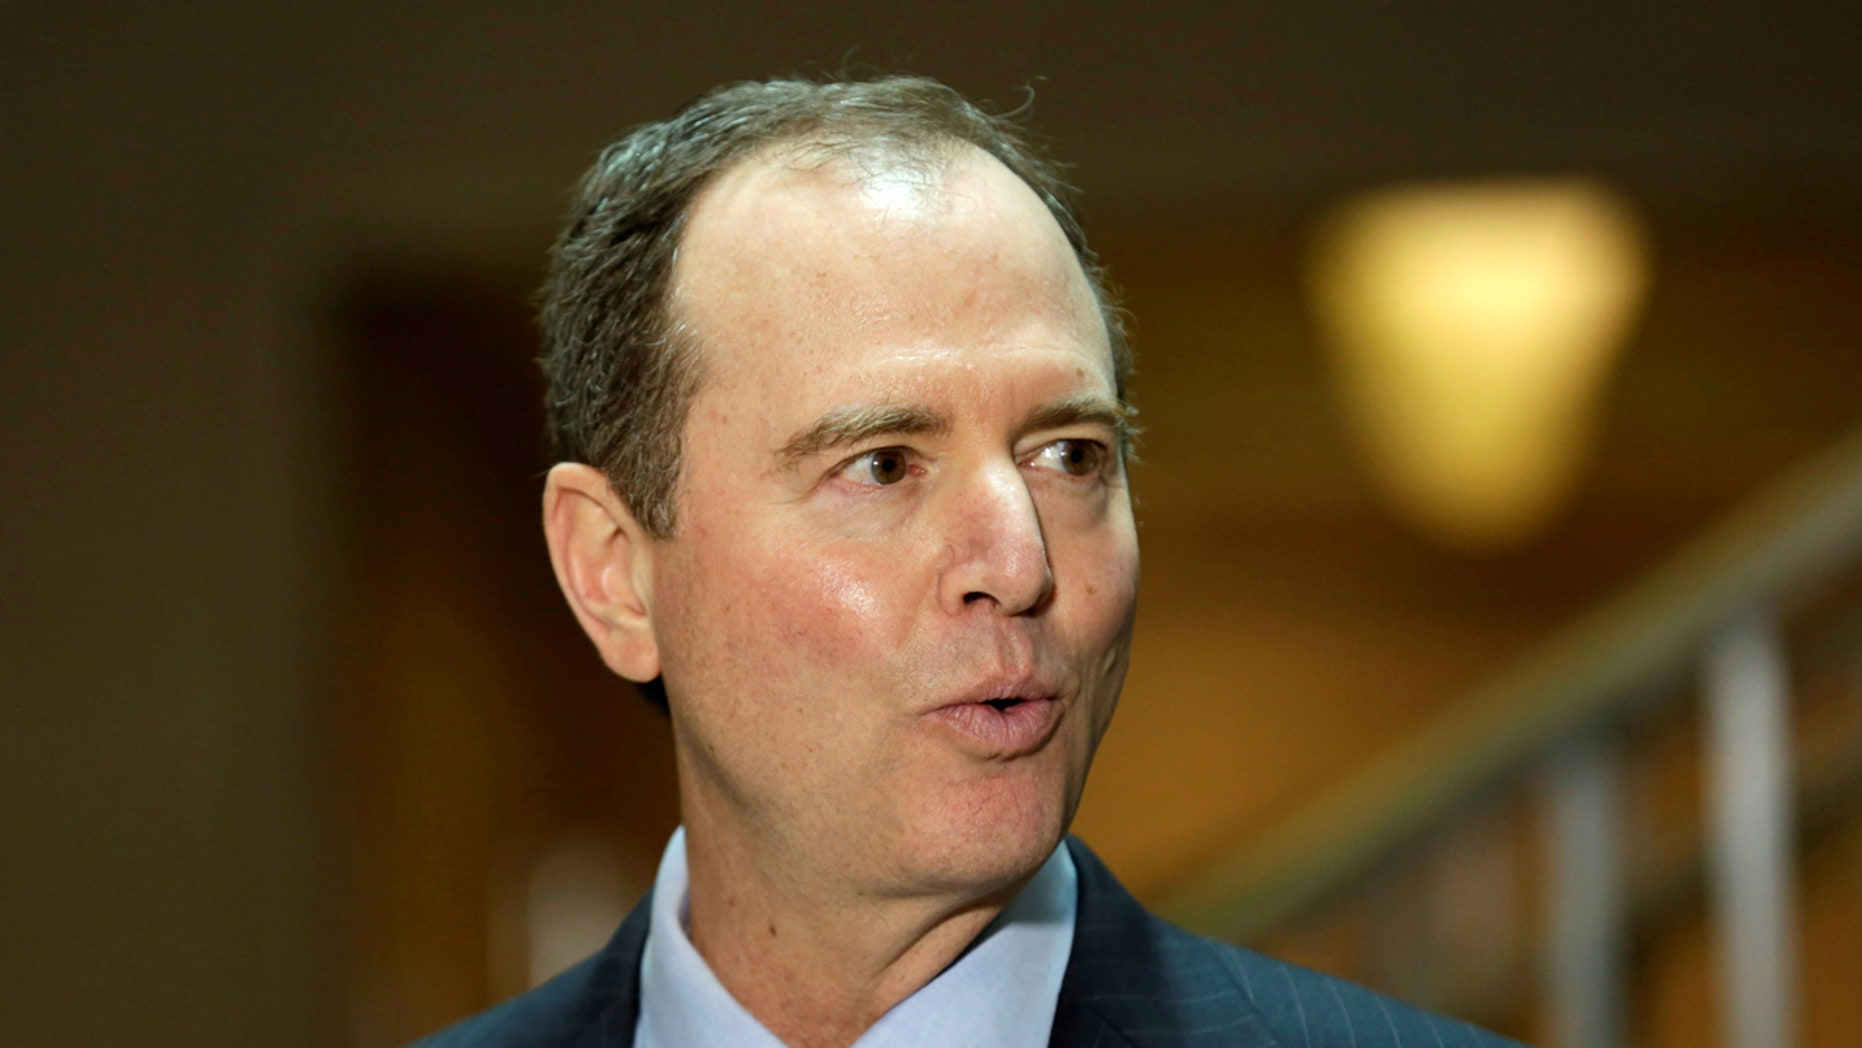 Congressman Adam Schiff of California donated the $2,700 he received from Ed Buck to the Trevor Project.